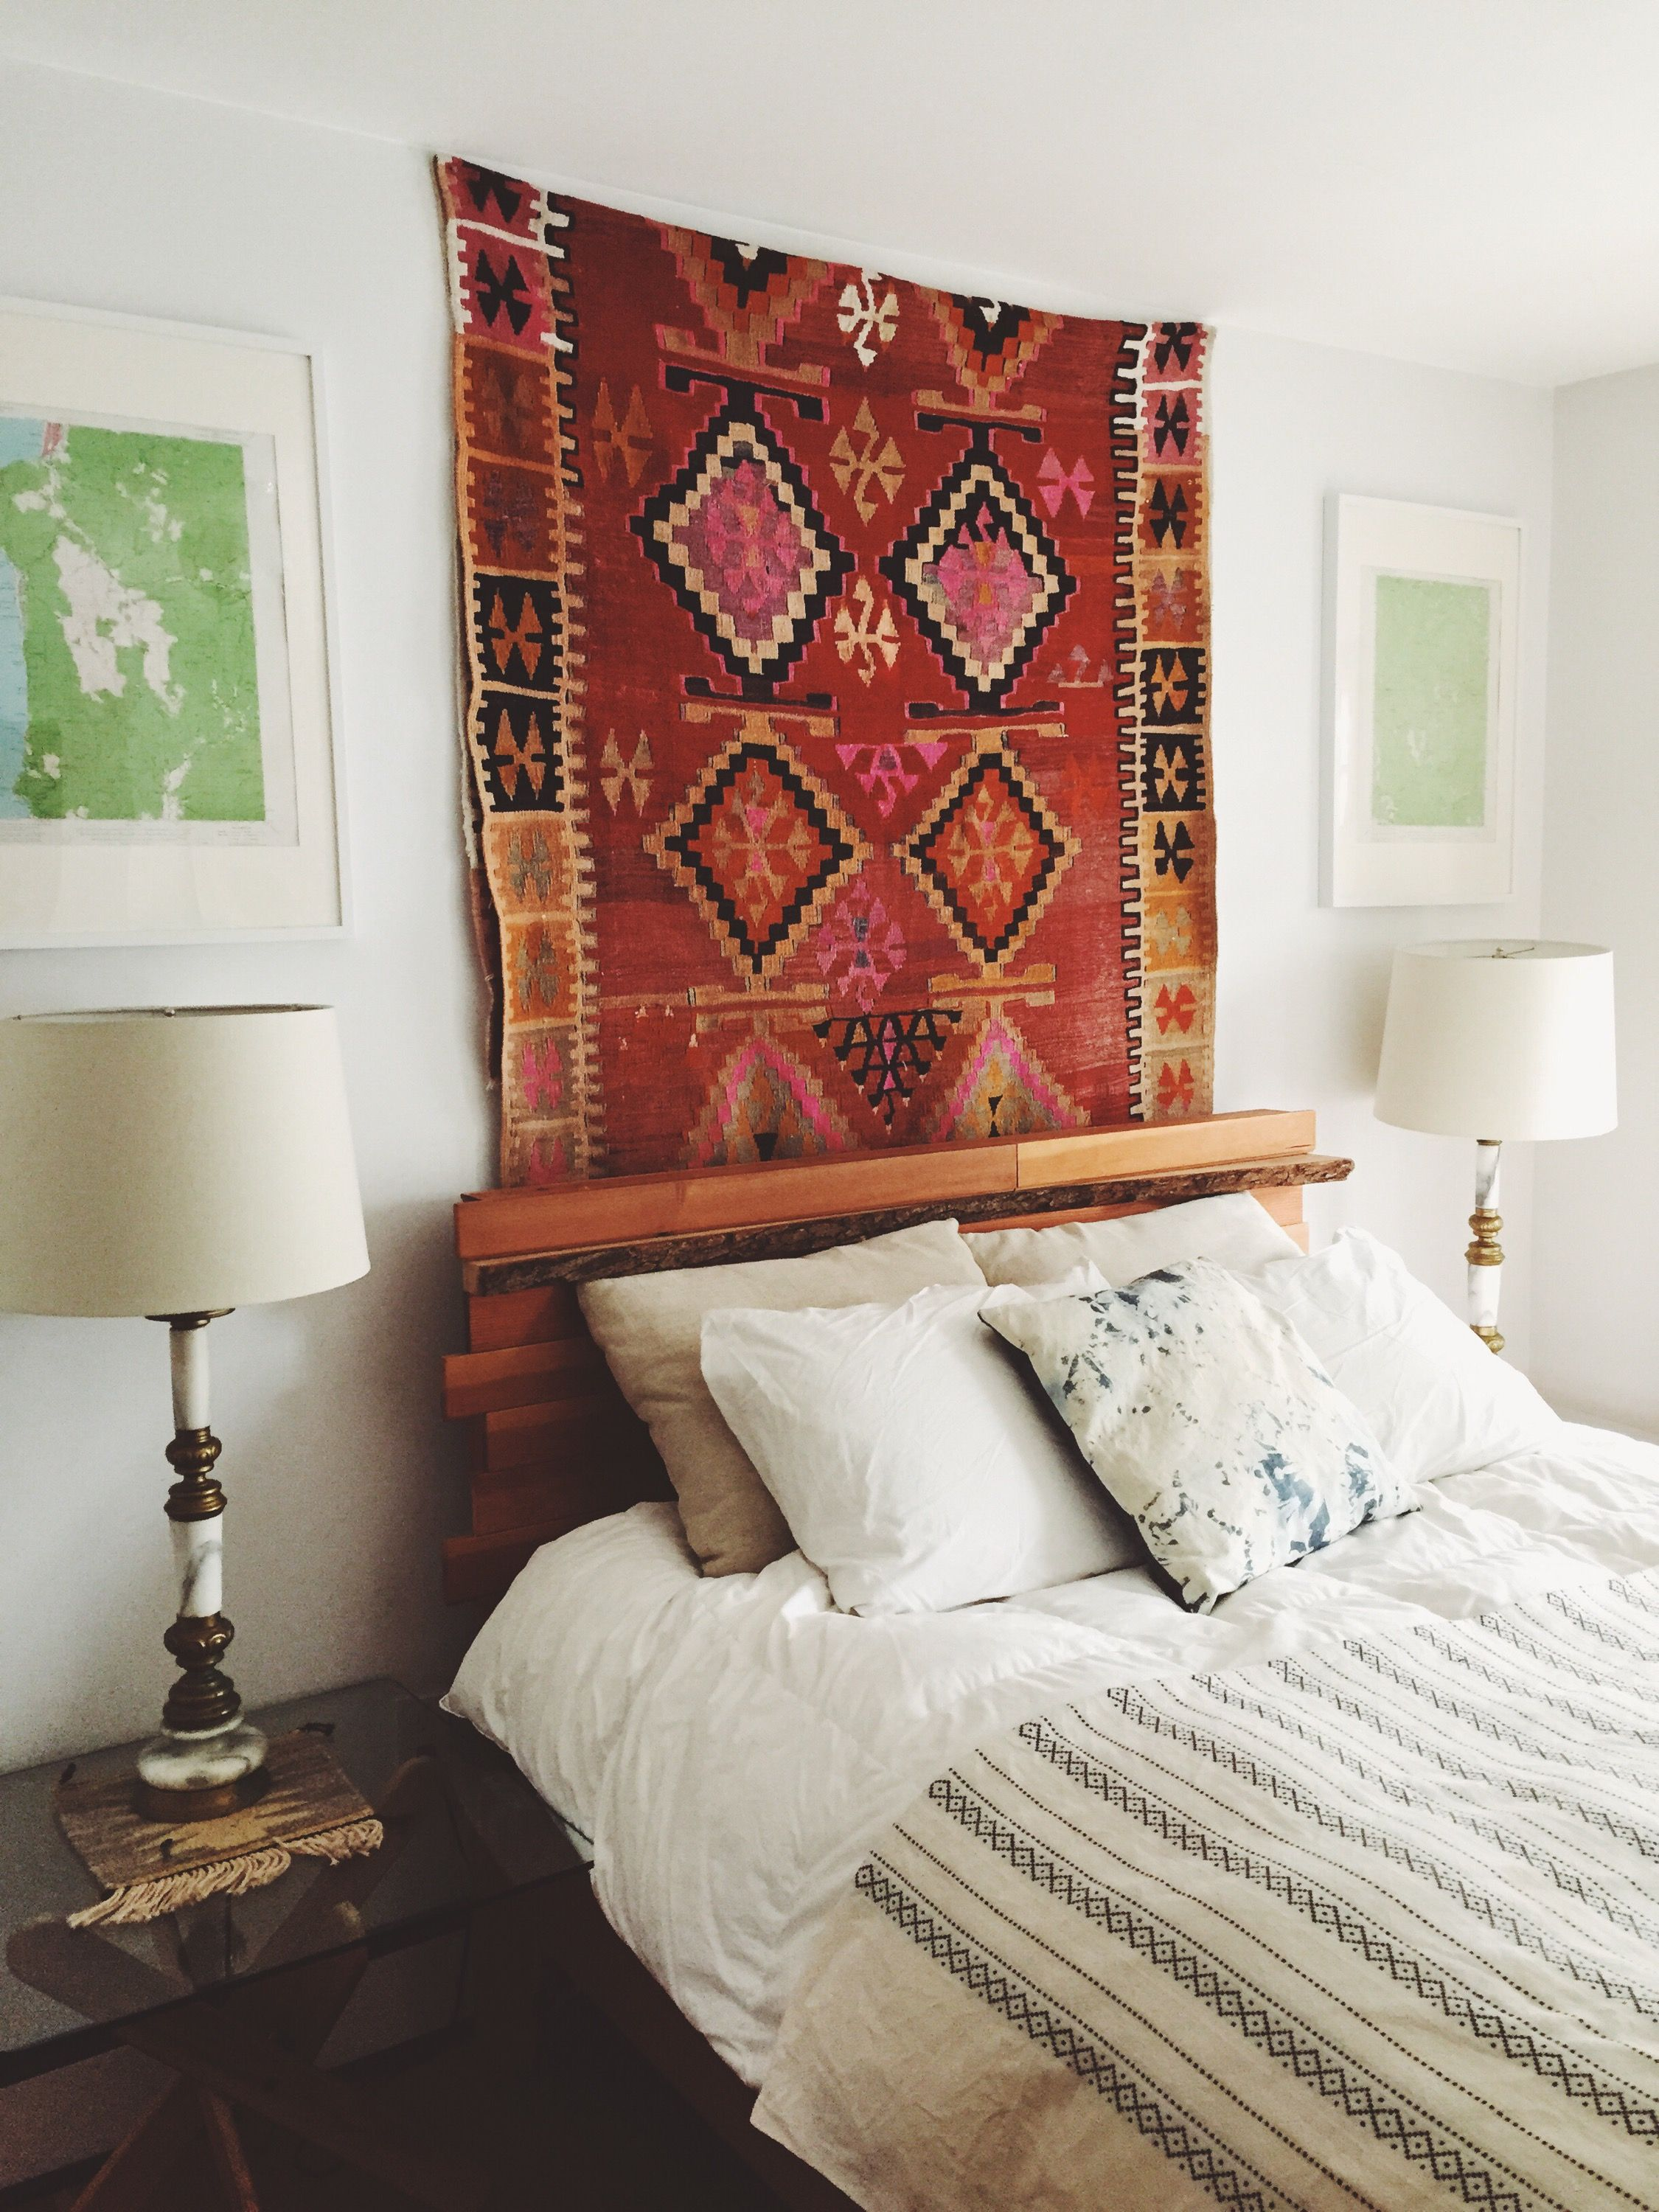 Transform a room by hanging a colorful Kilim rug on the wall above ...